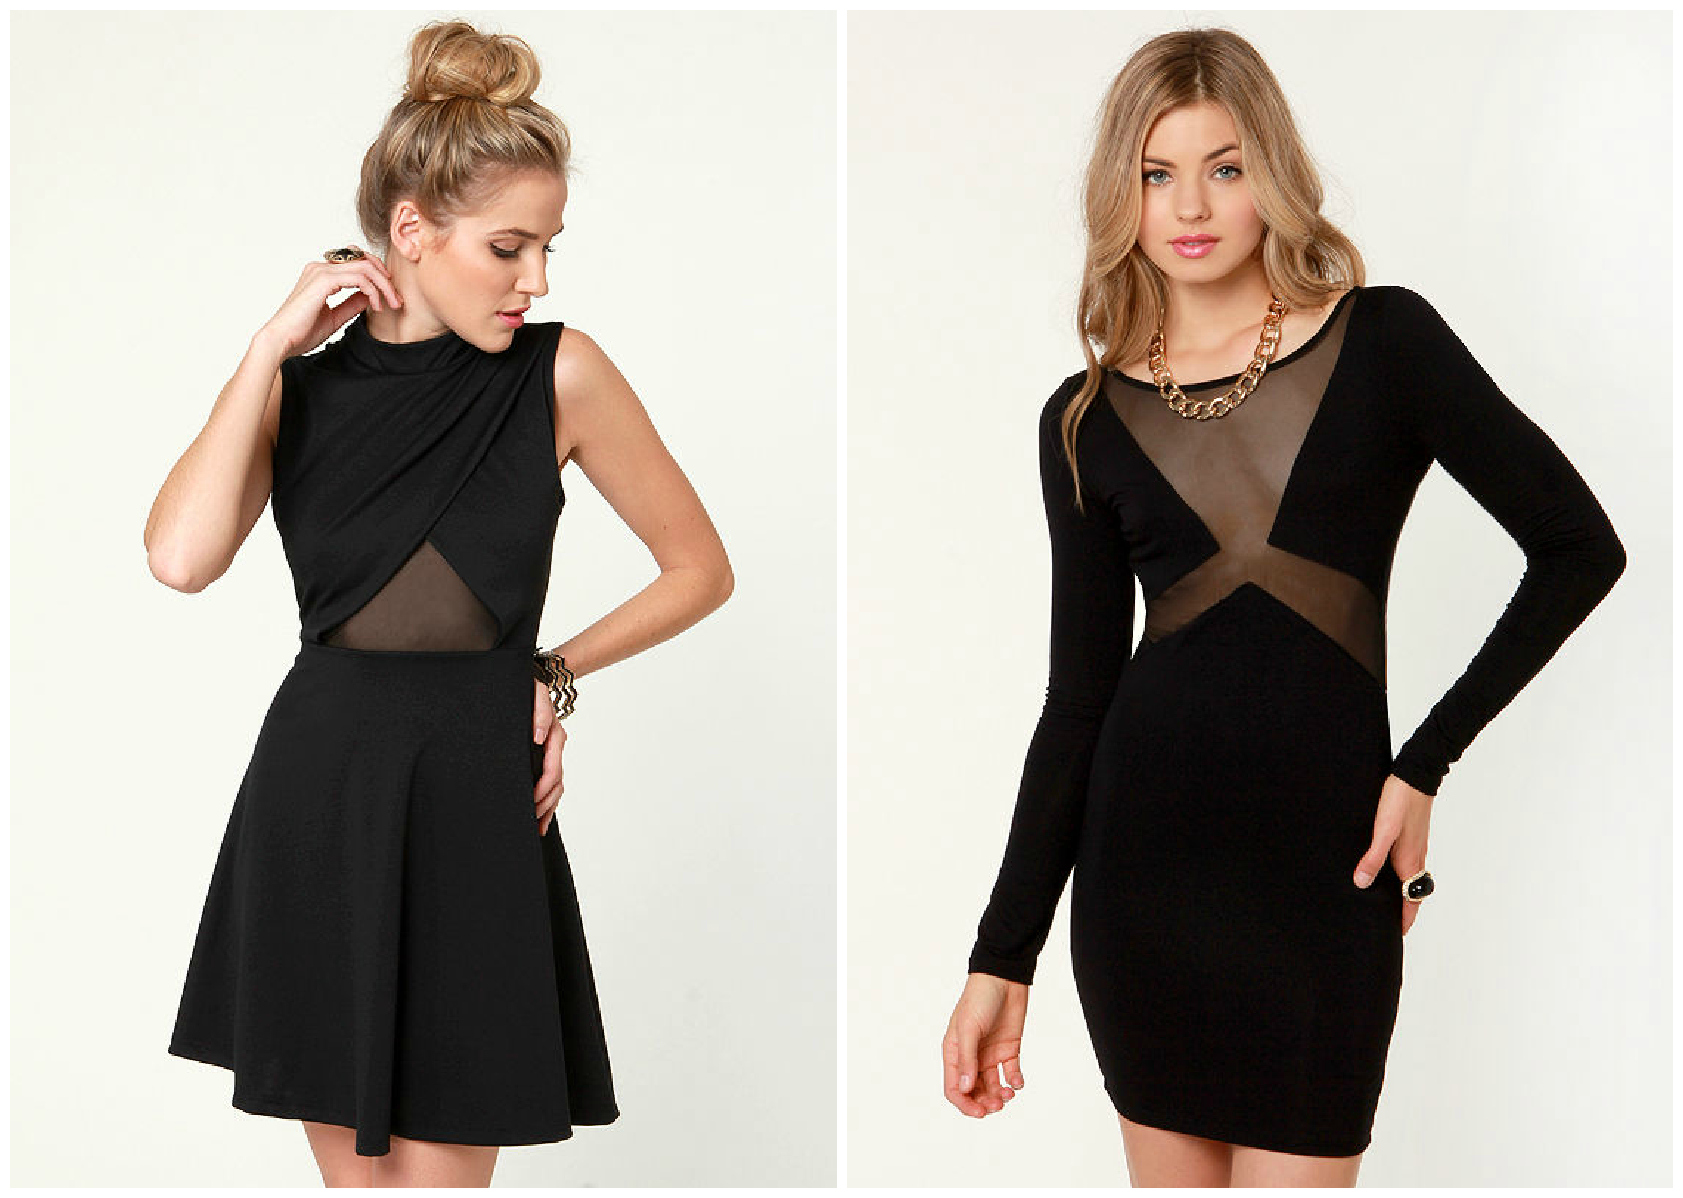 Little Black Dress After Prom Looks By Lulus Afterprom